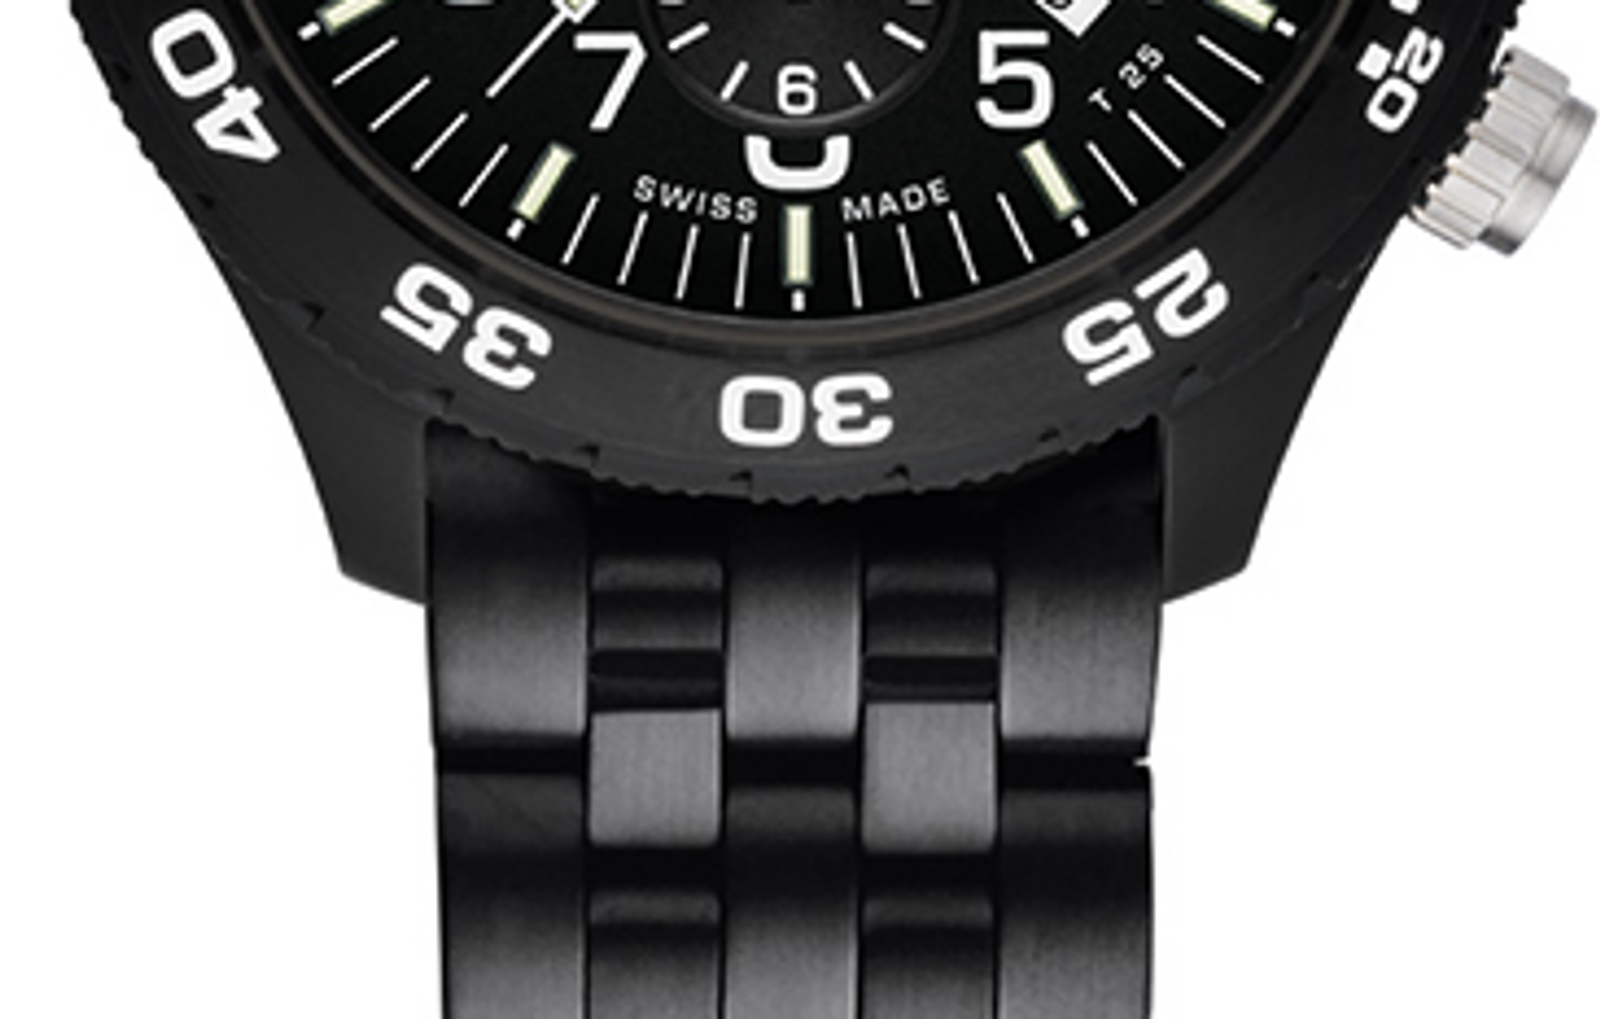 P67 Officer Chronograph Pro